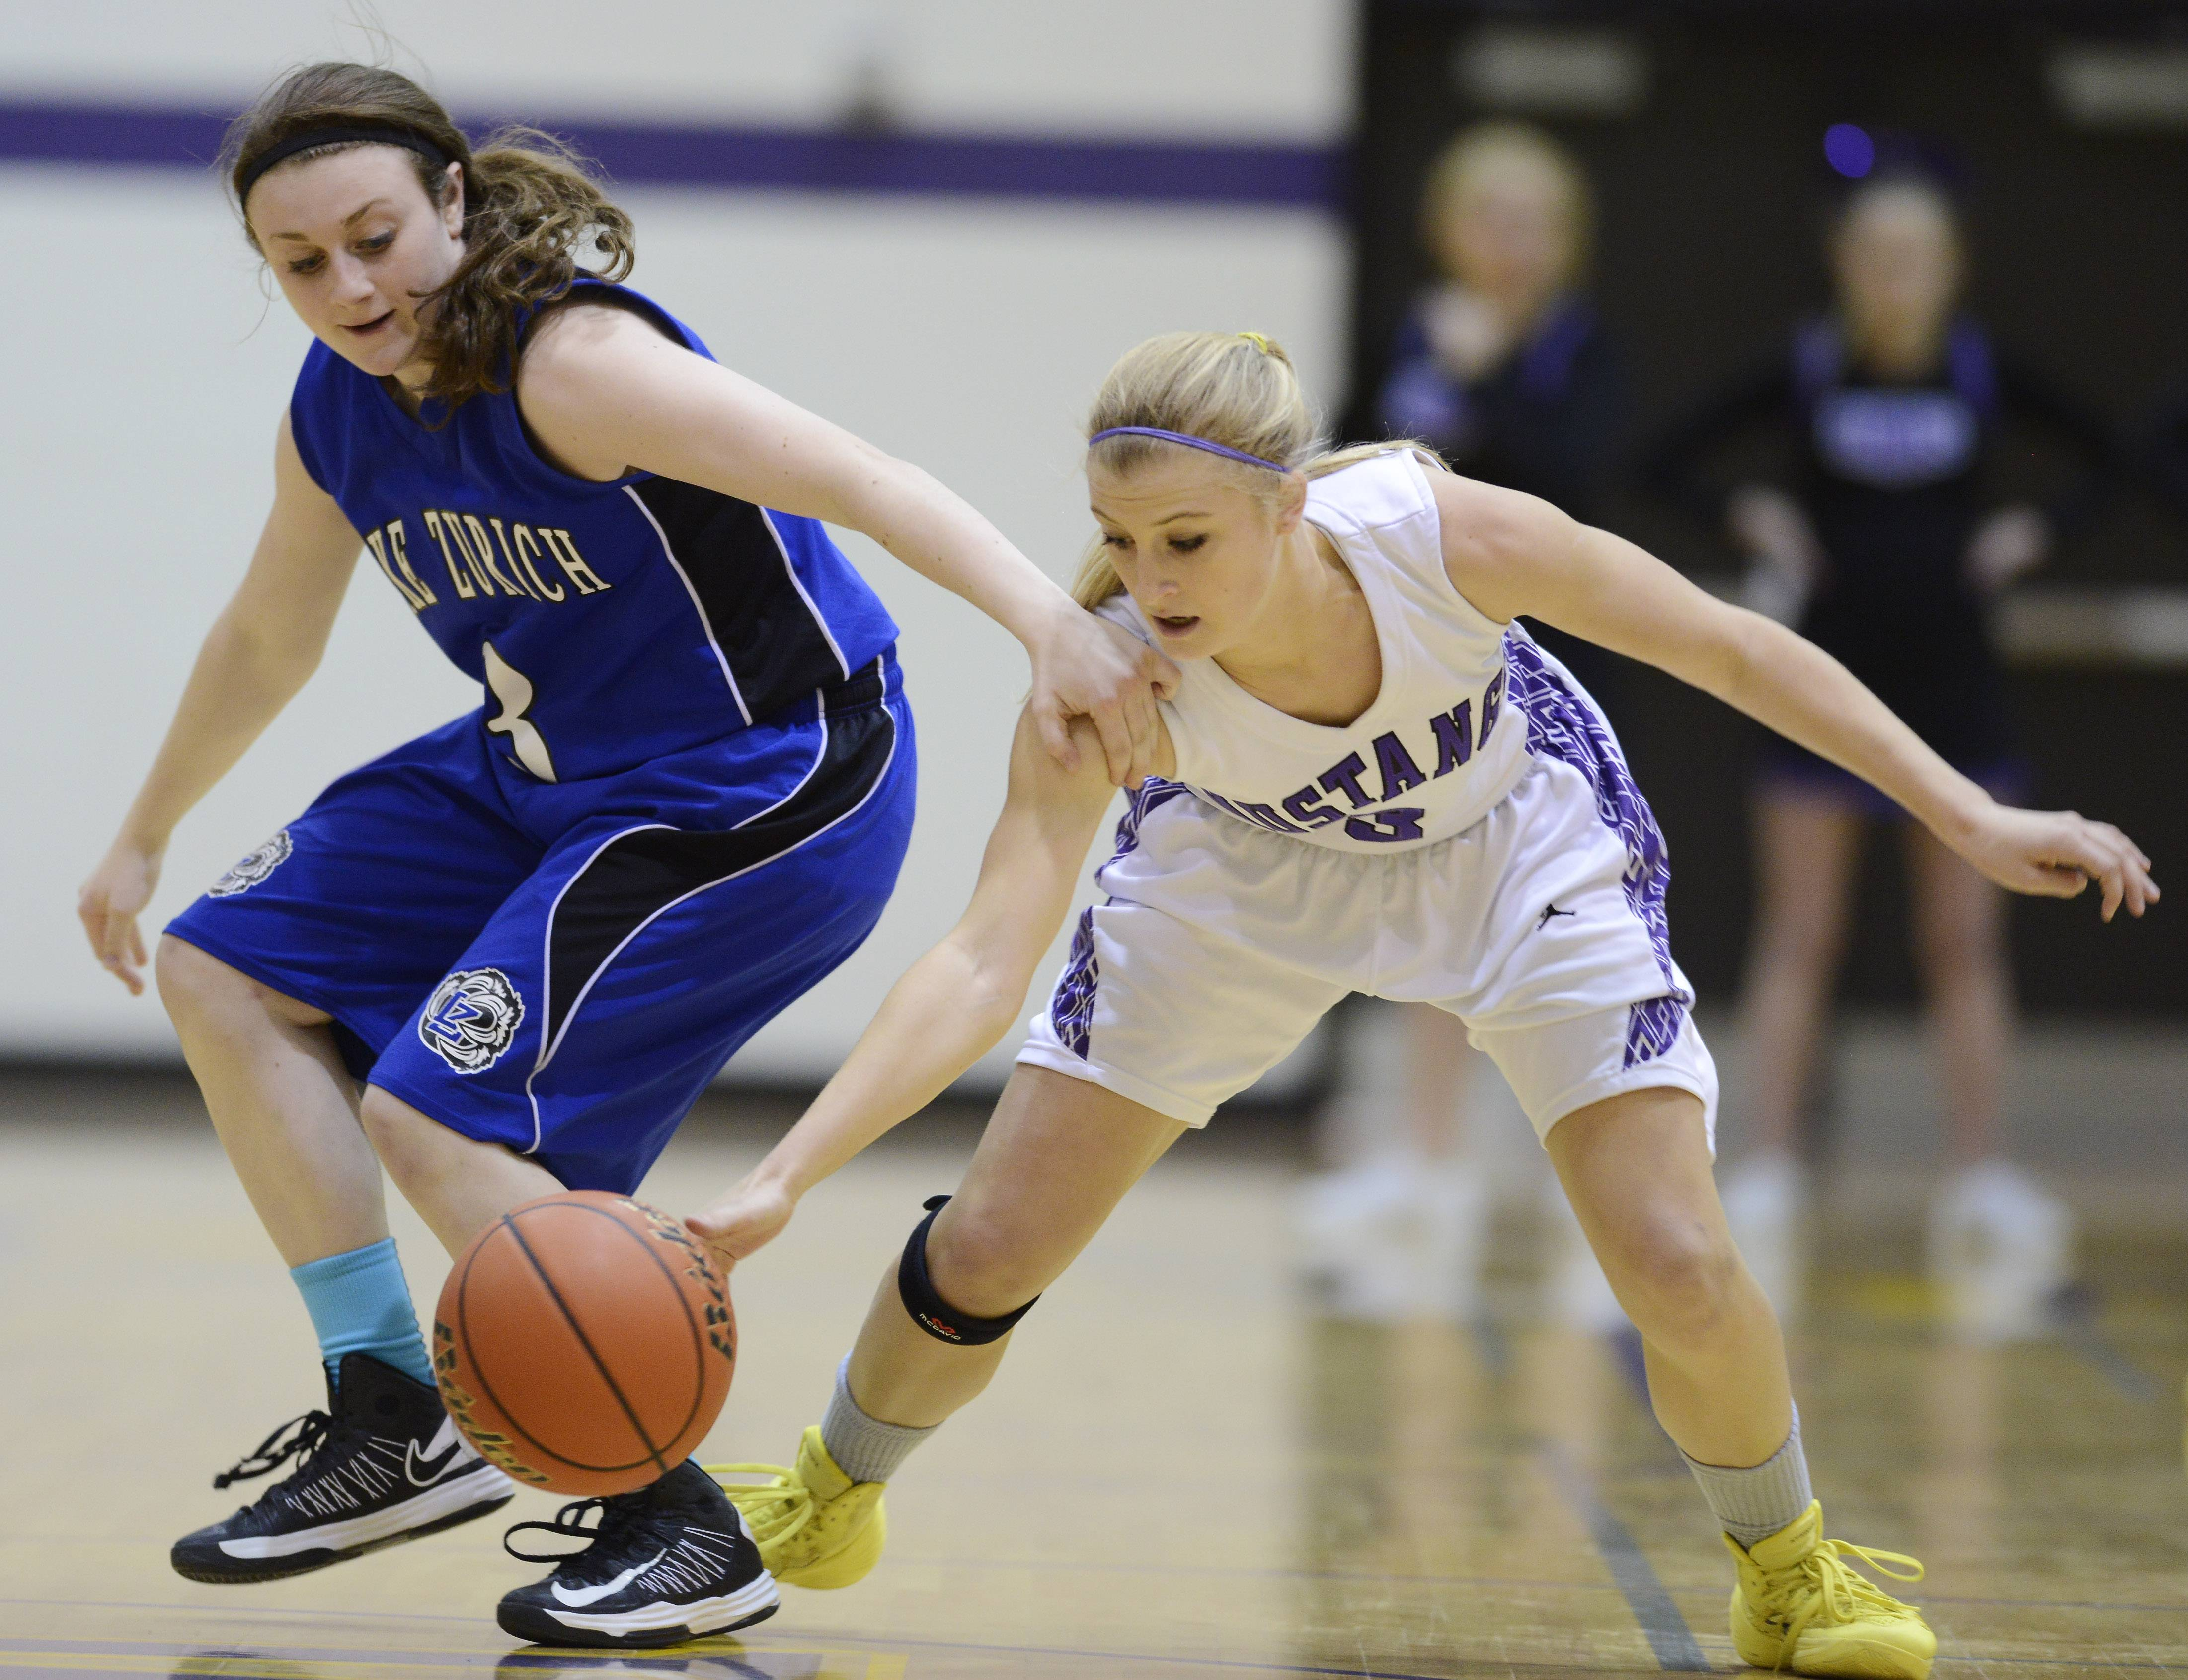 Rolling Meadows' Jackie Kemph, right, steals the ball from Lake Zurich's Frankie Nasco during Tuesday's regional semifinal at Rolling Meadows.